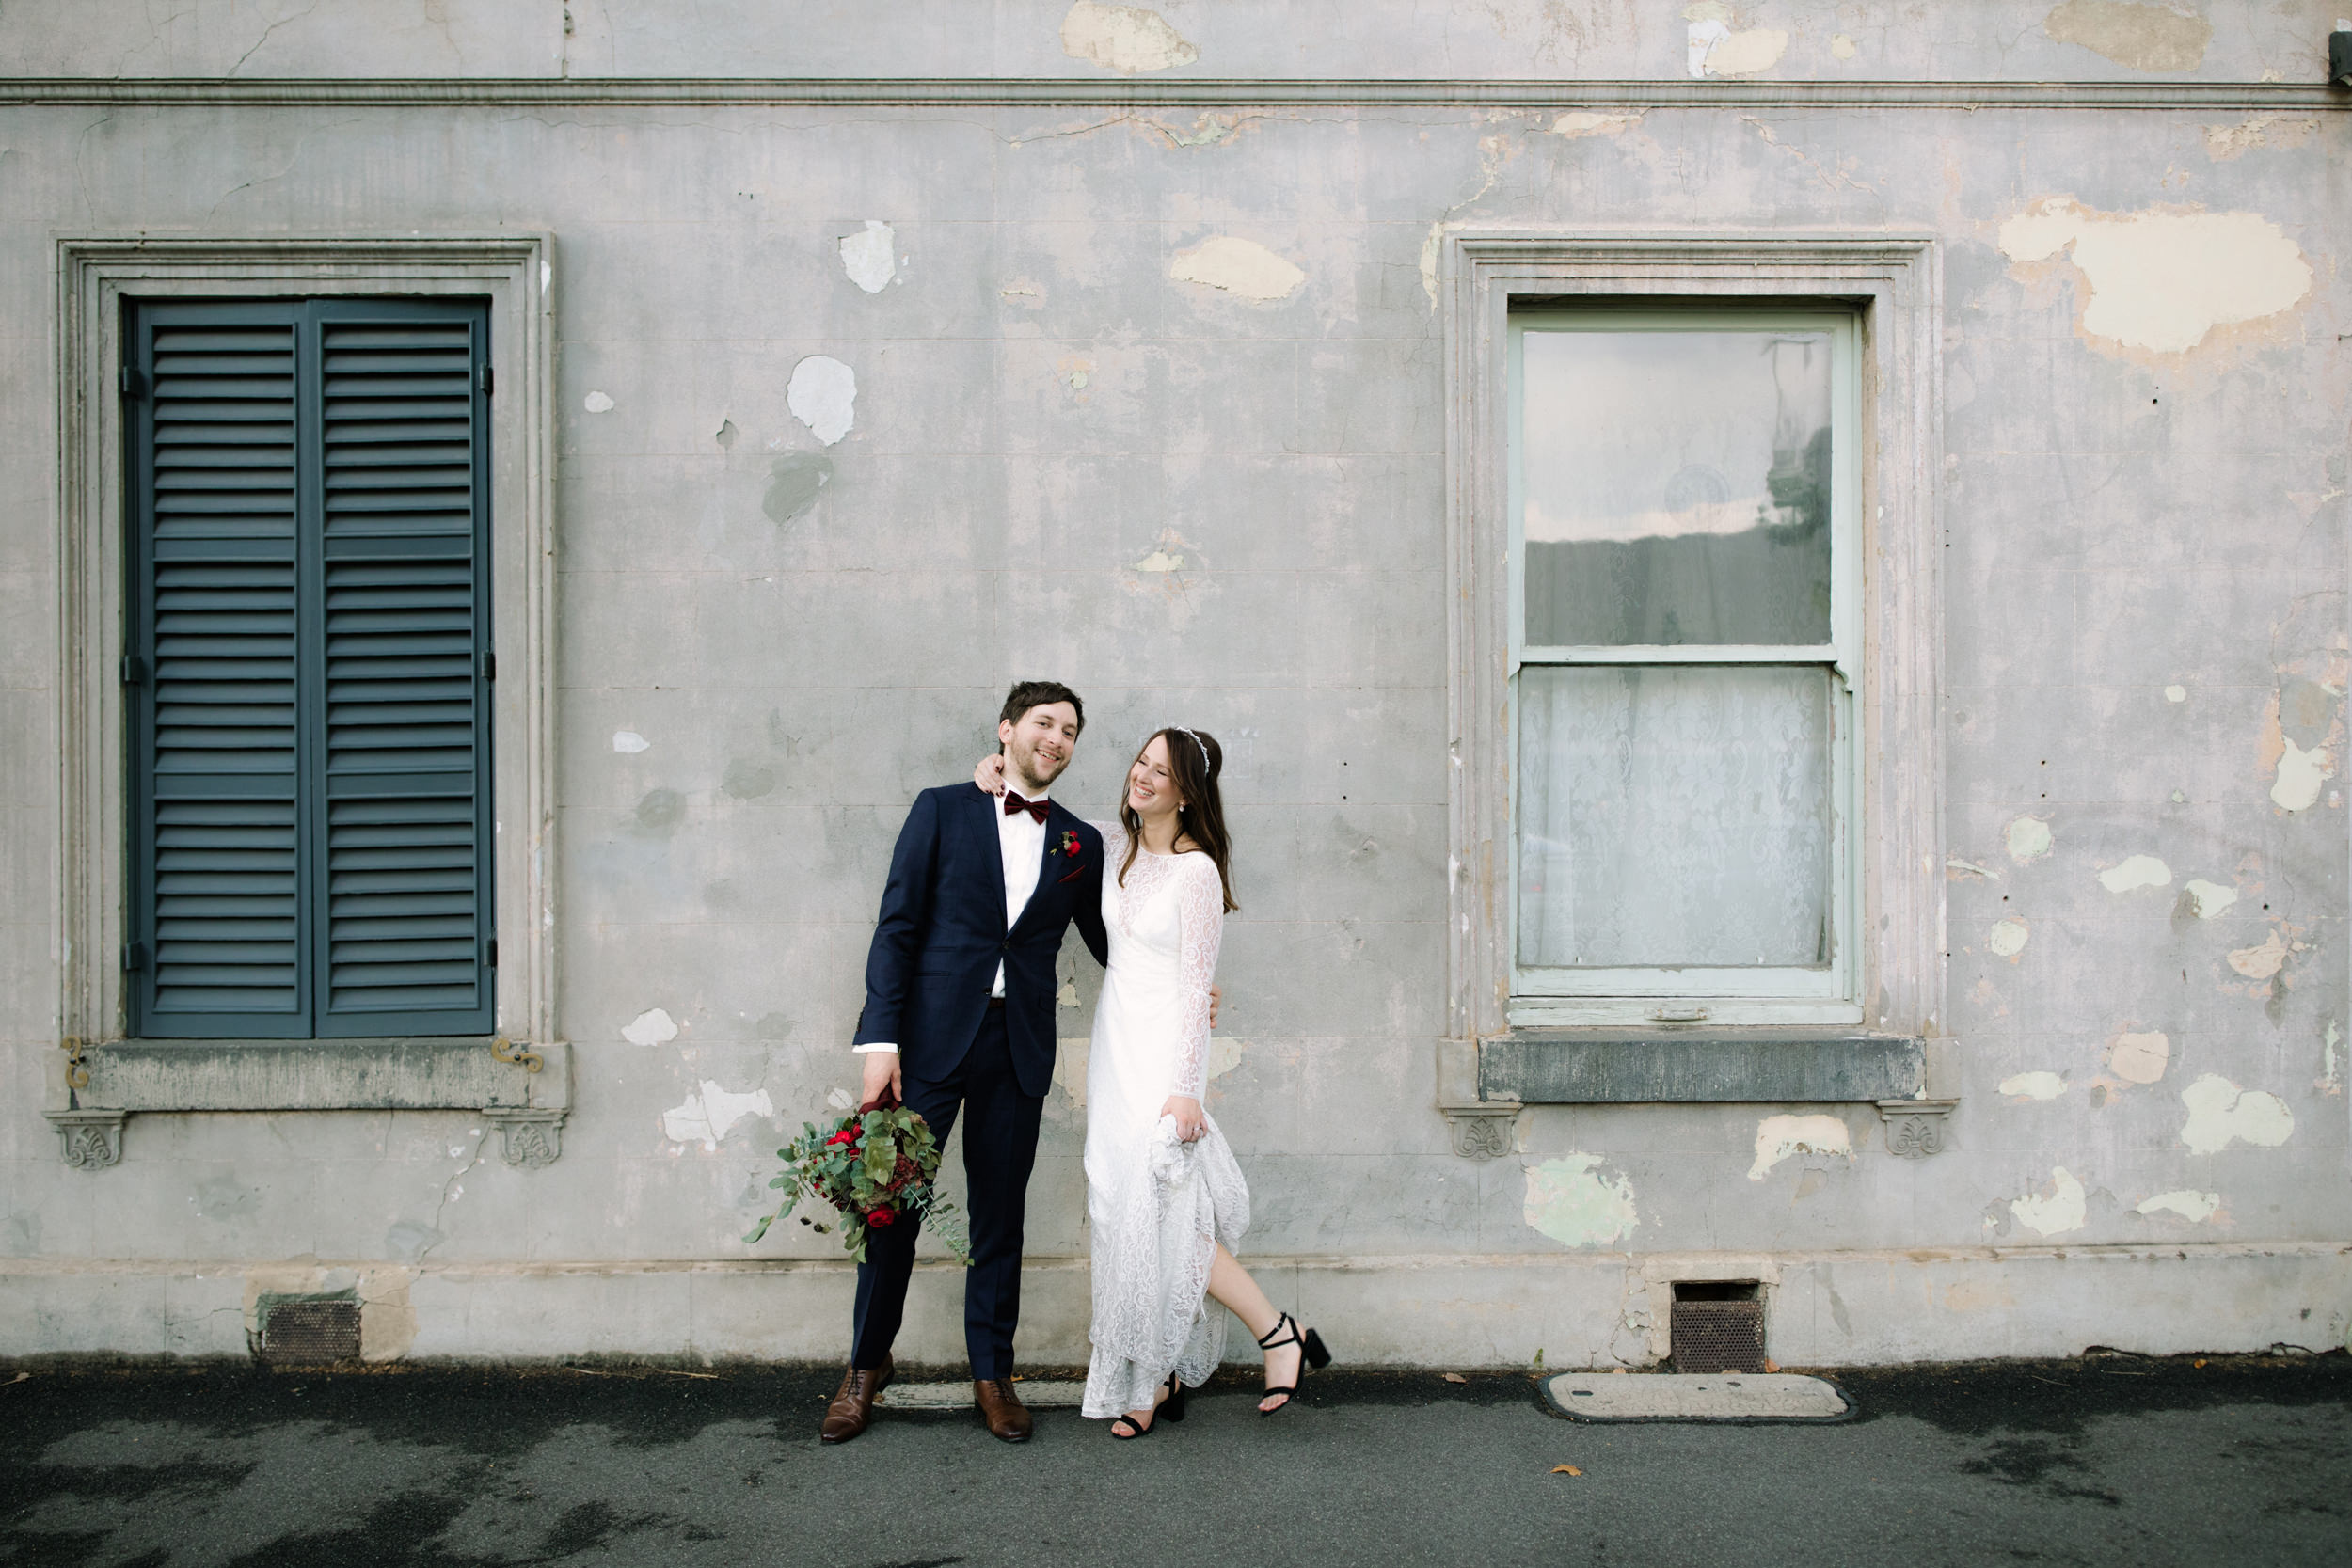 I_Got_You_Babe_Weddings_Emily_Matt_Rupert_Glasshaus_Melbourne0168.JPG